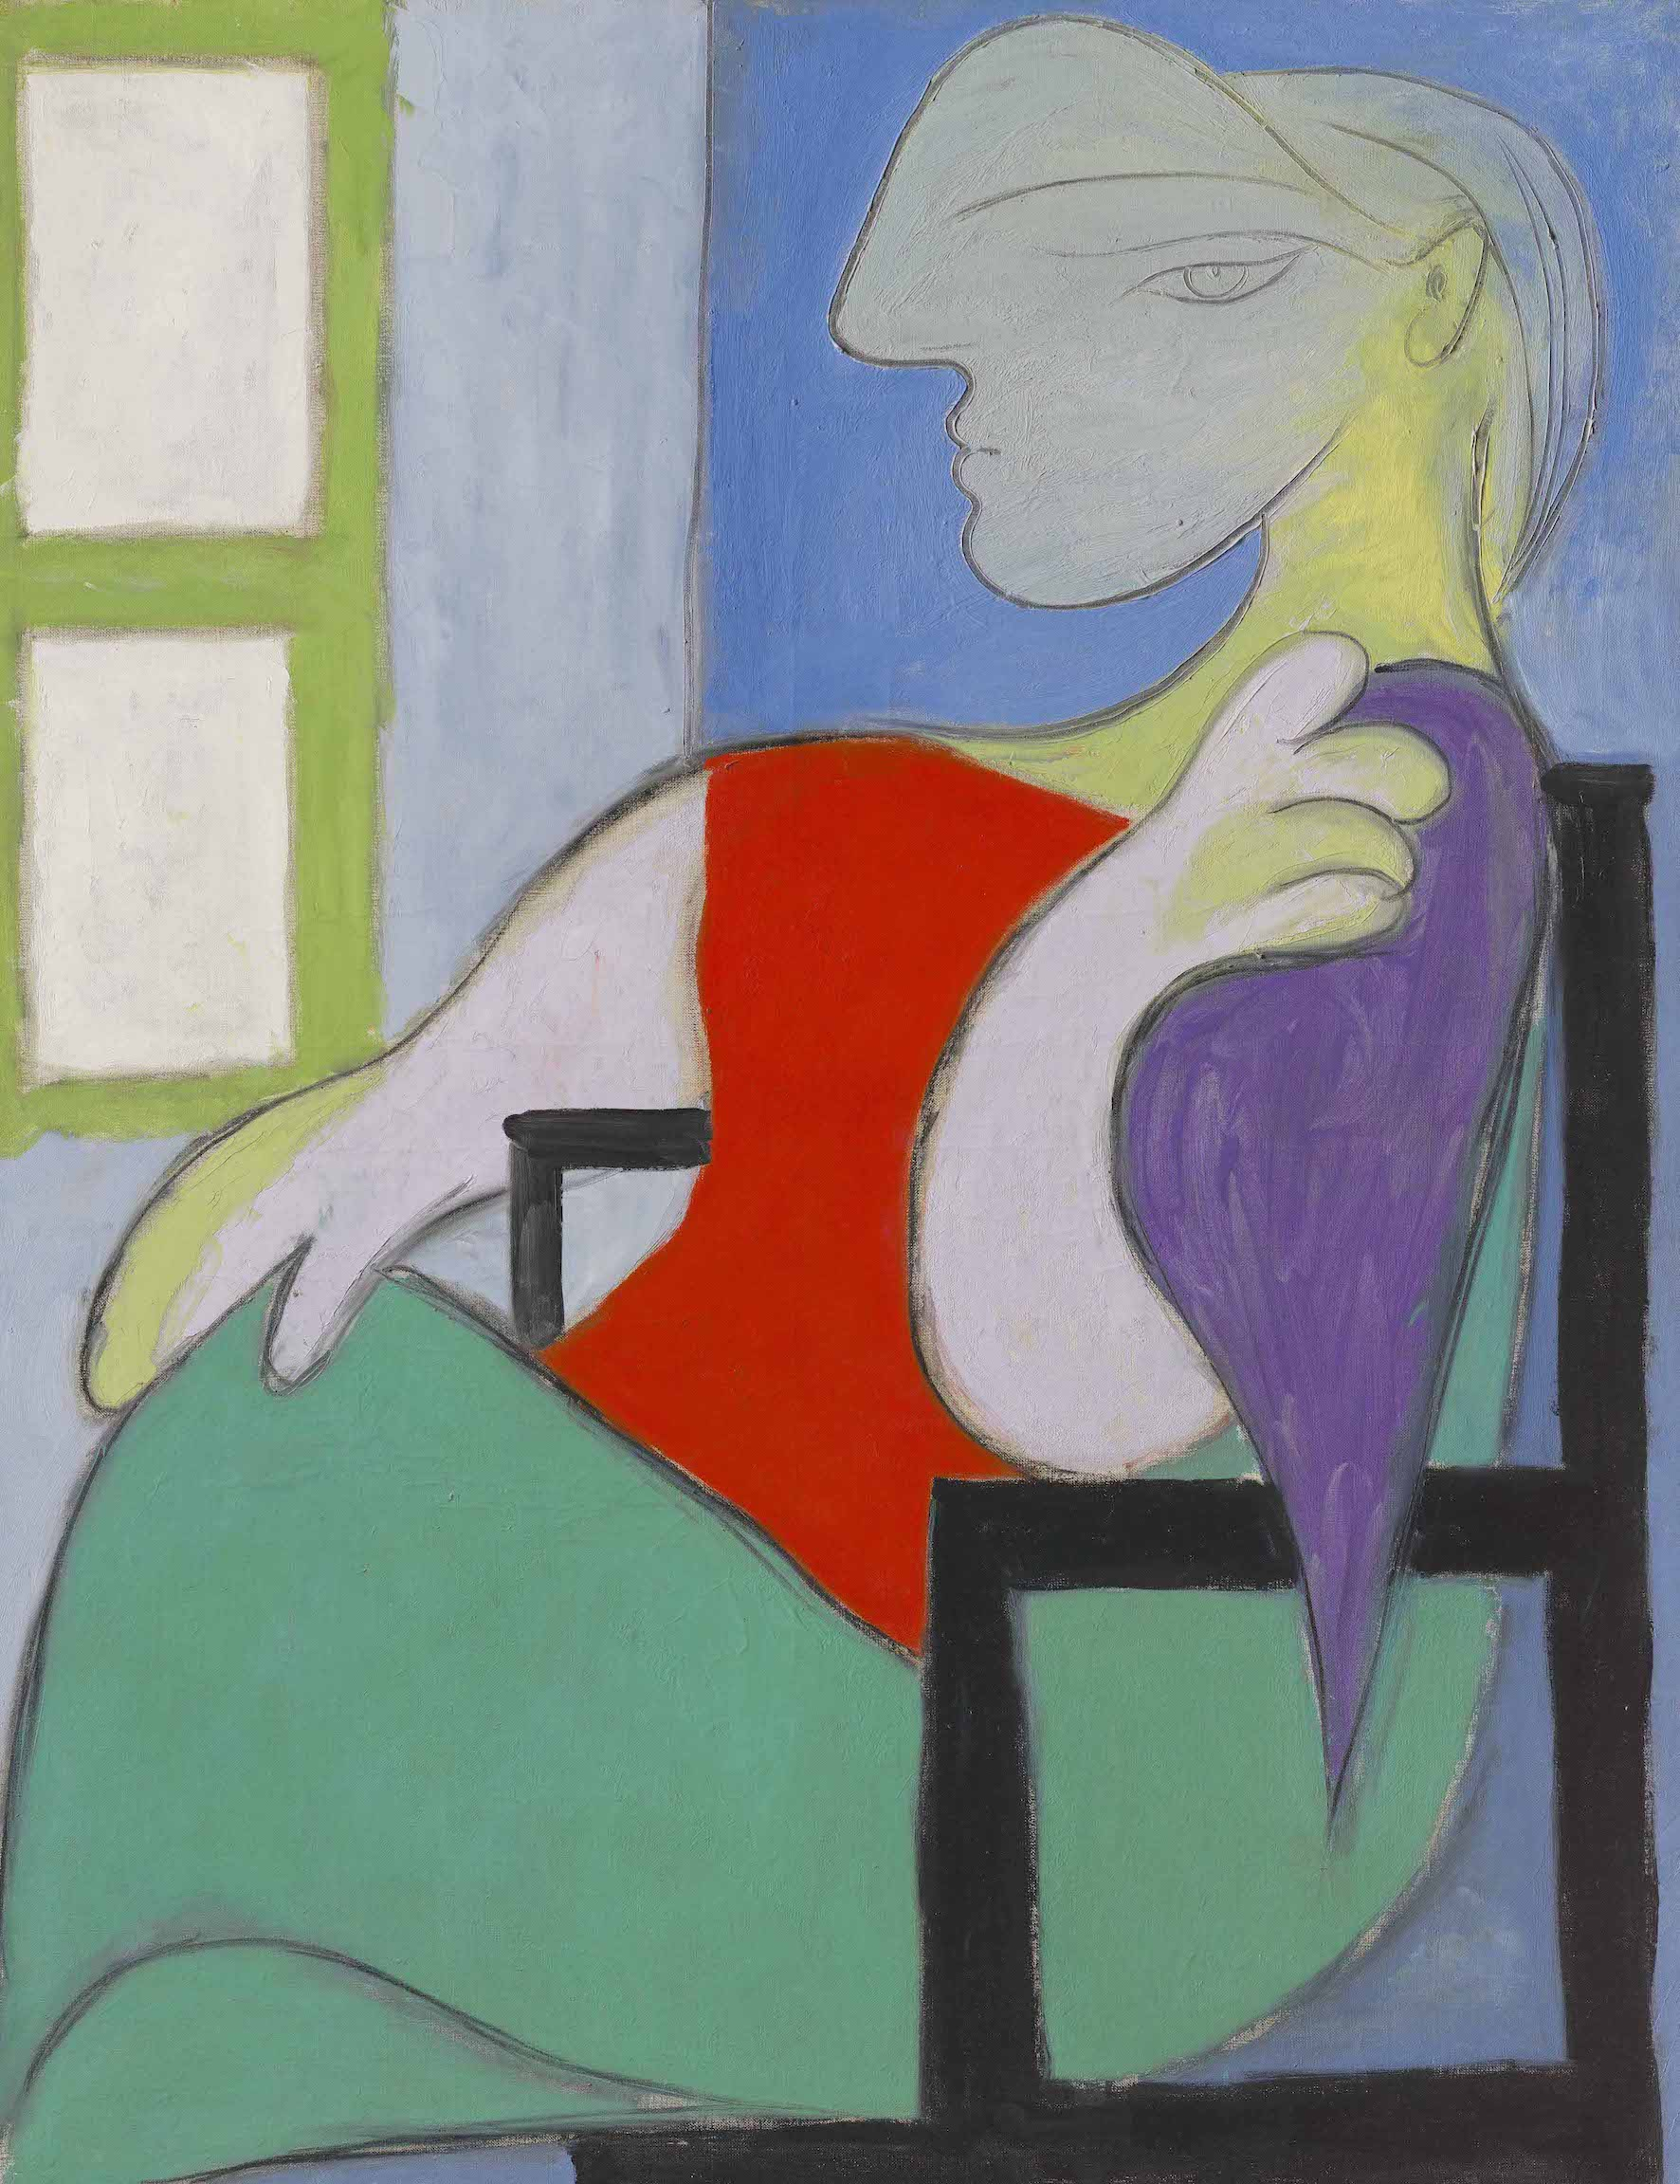 PABLO PICASSO Femme assise près d'une fenêtre (Marie-Thérèse) oil on canvas 57 ½ x 44 ⅞ in. (146 x 114 cm.) Painted in Boisgeloup on 30 October 1932 - © Christie's Images Limited 2021